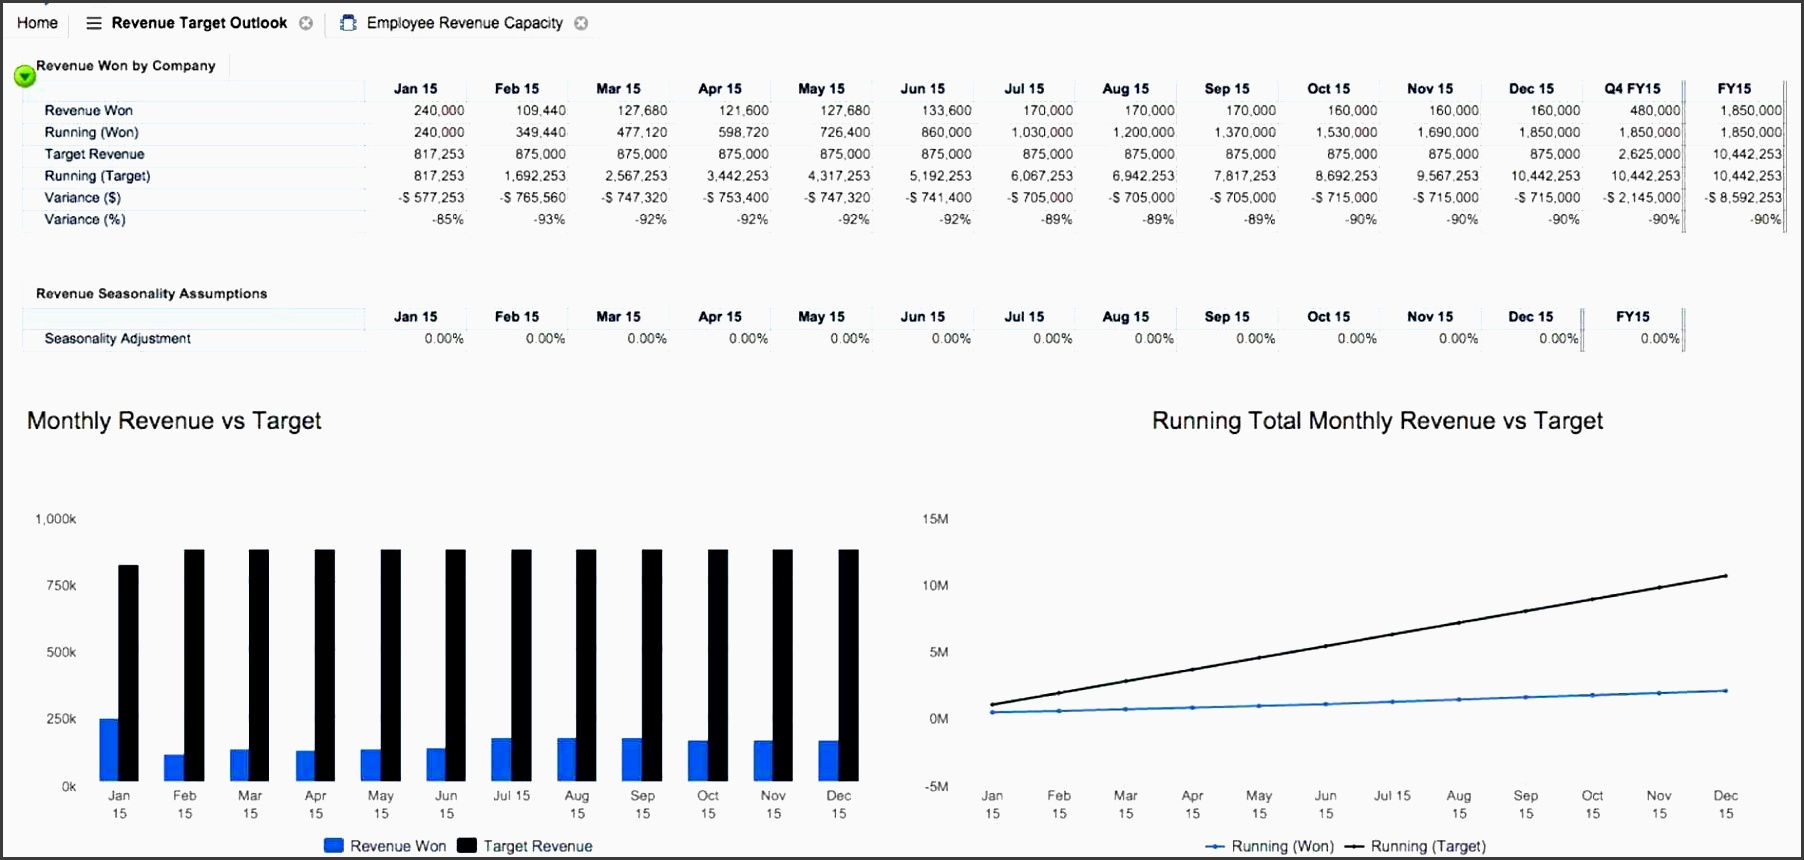 free work shift schedule spreadsheet for excel ideal best sample free work shift schedule spreadsheet for excel ideal best sample sales plan format images